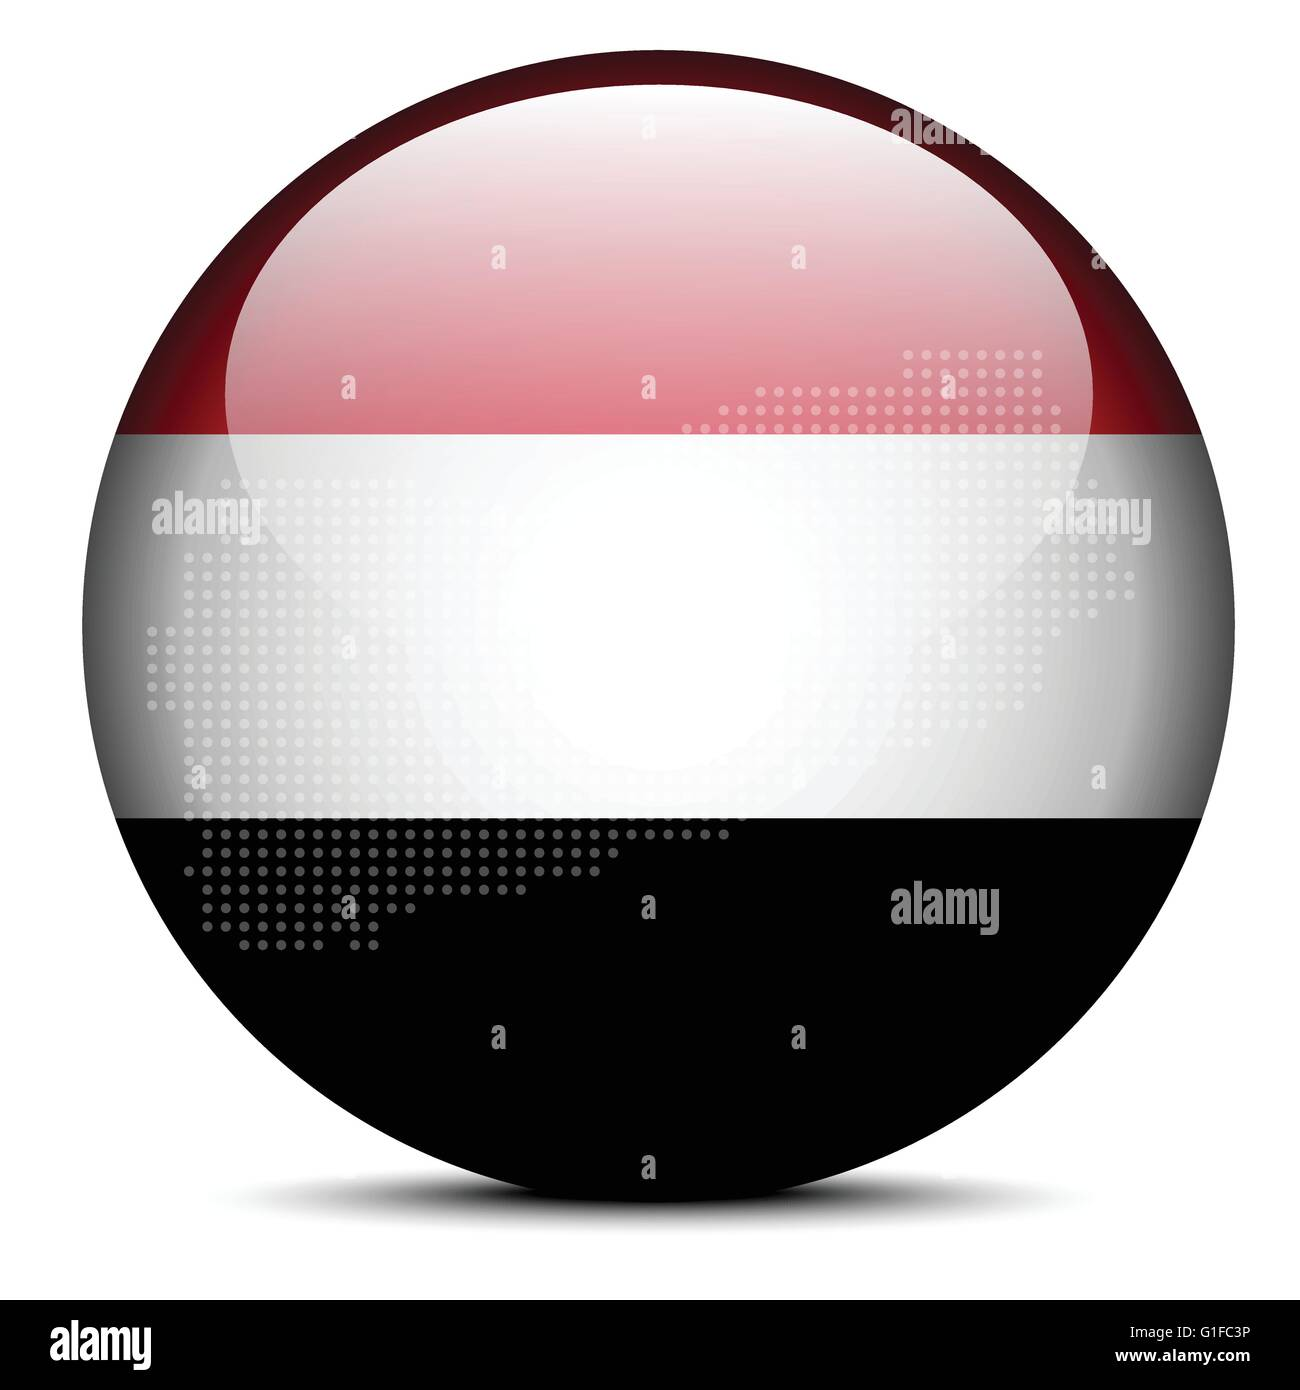 Vector Image -  Map with Dot Pattern on flag button of Republic of Yemen Stock Vector